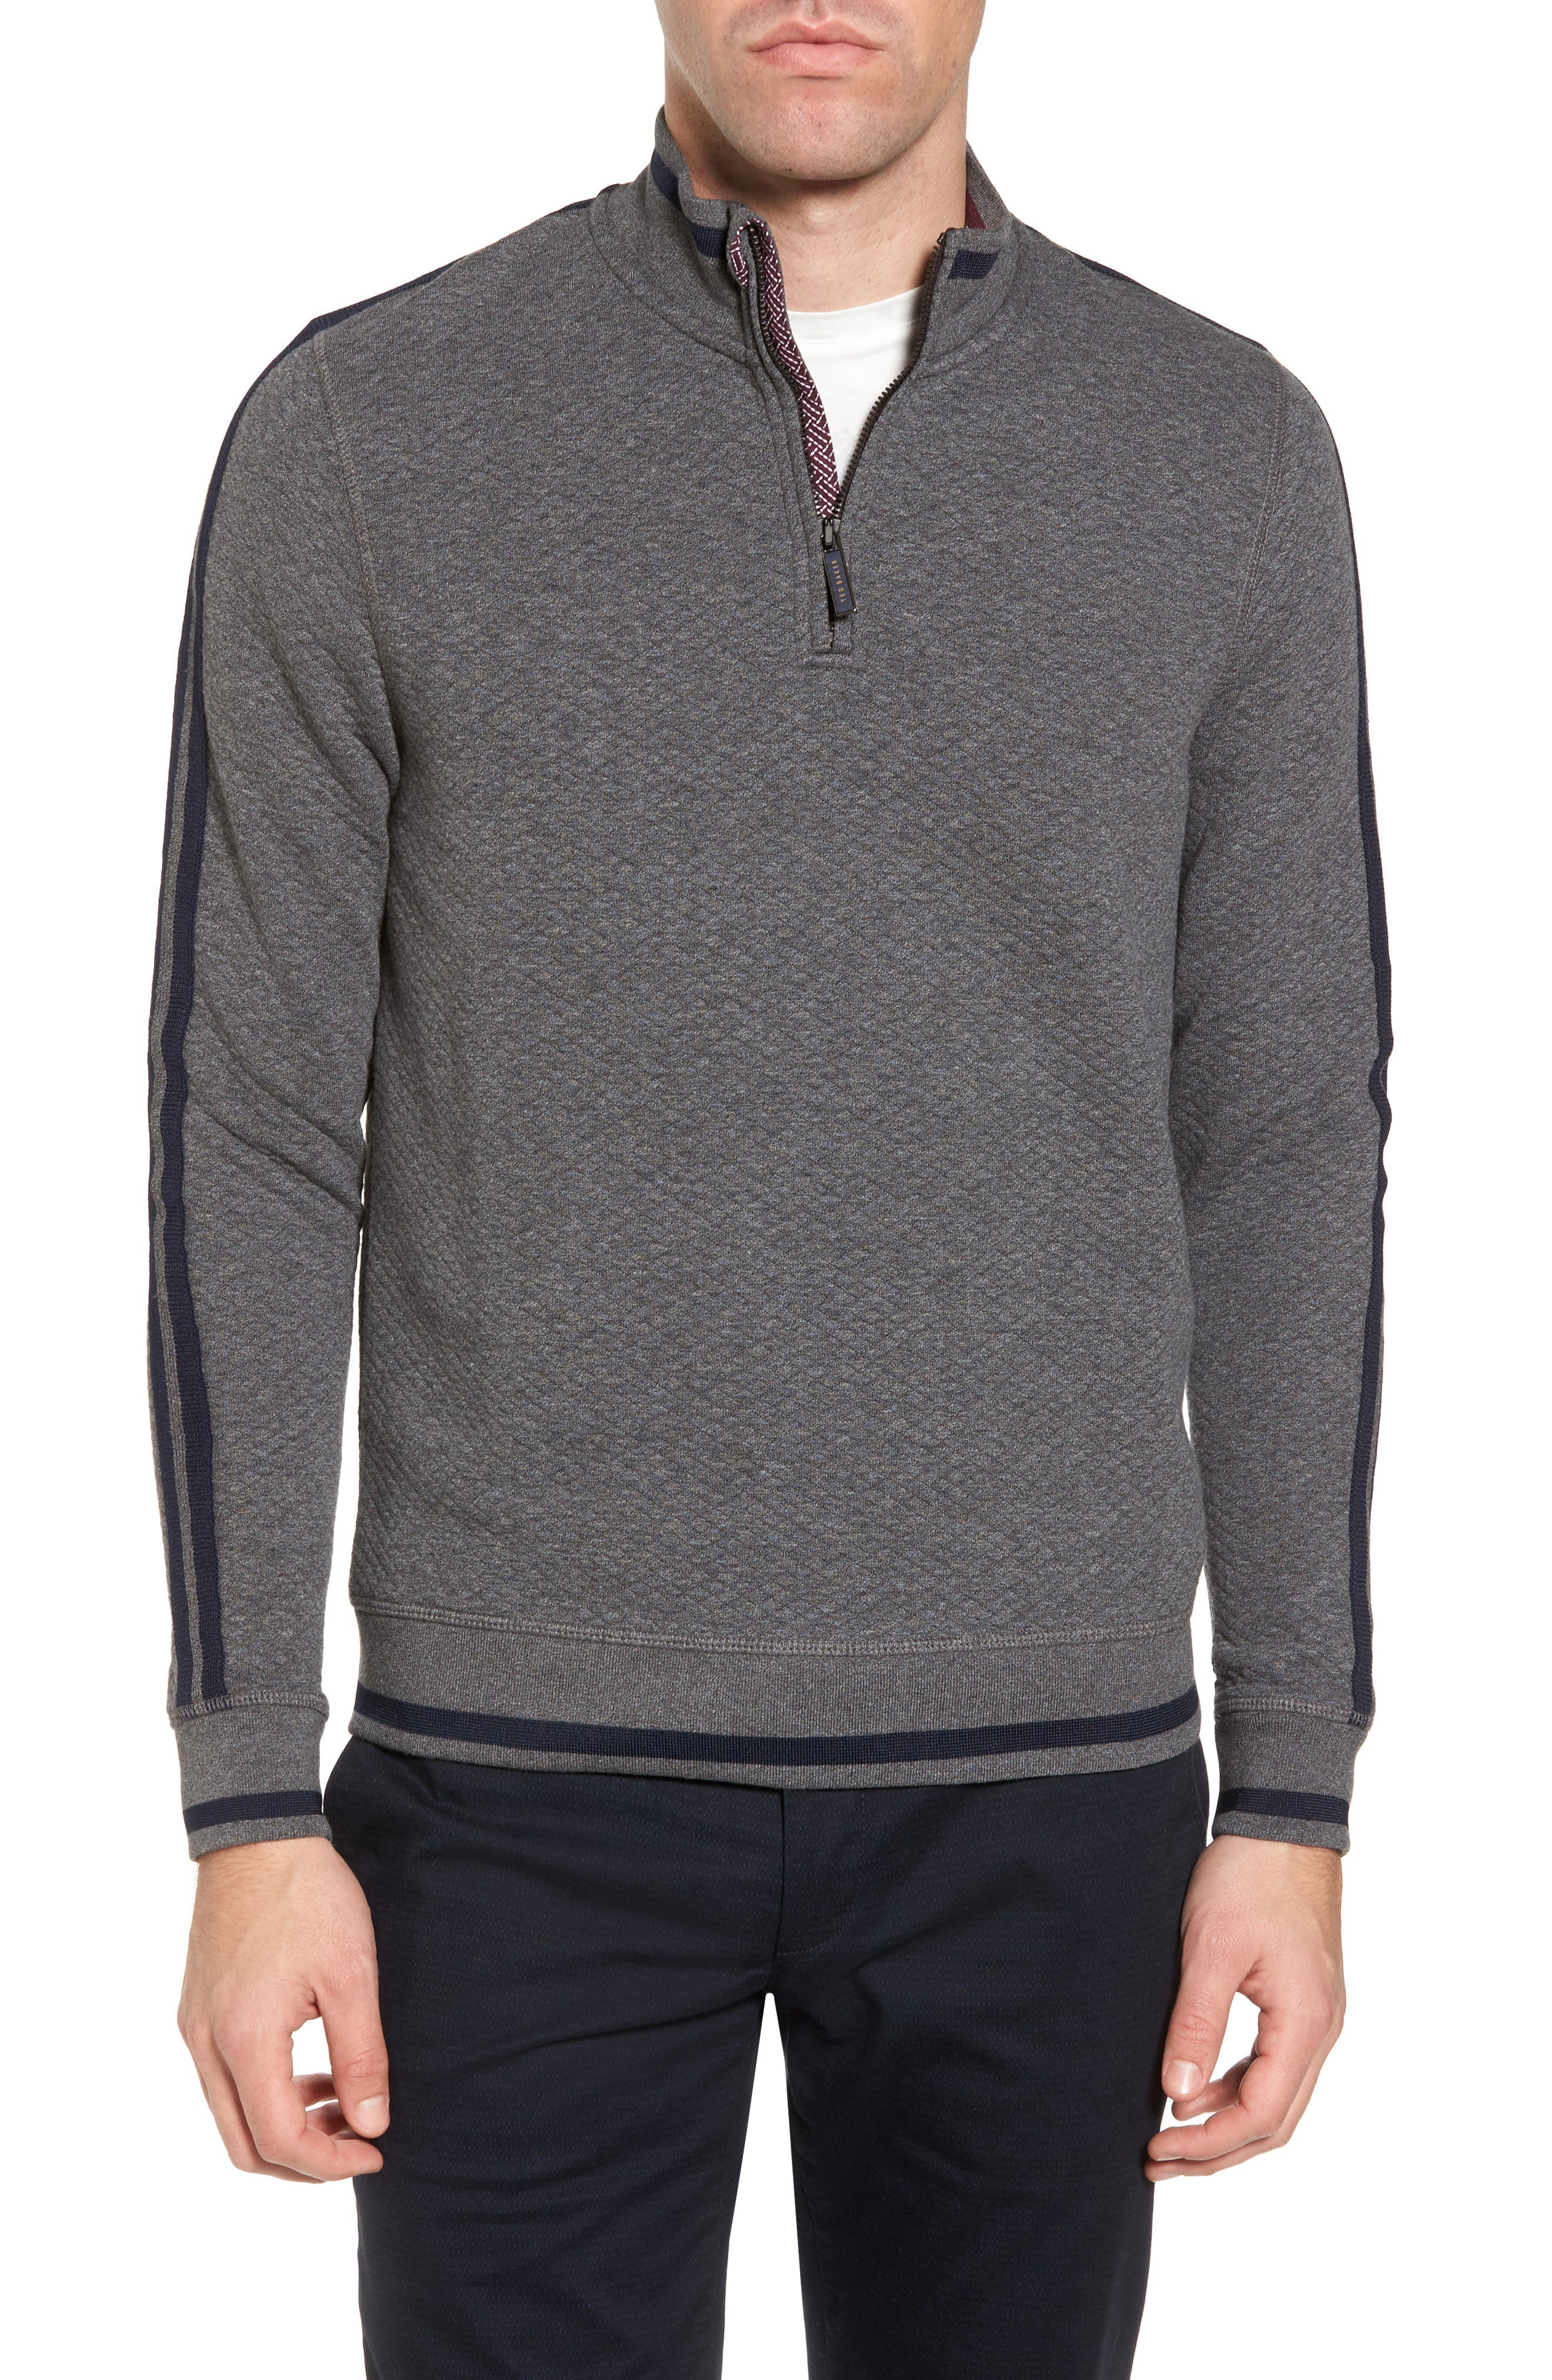 Sidney Quilted Quarter Zip Sweatshirt,                         Main,                         color, Charcaol